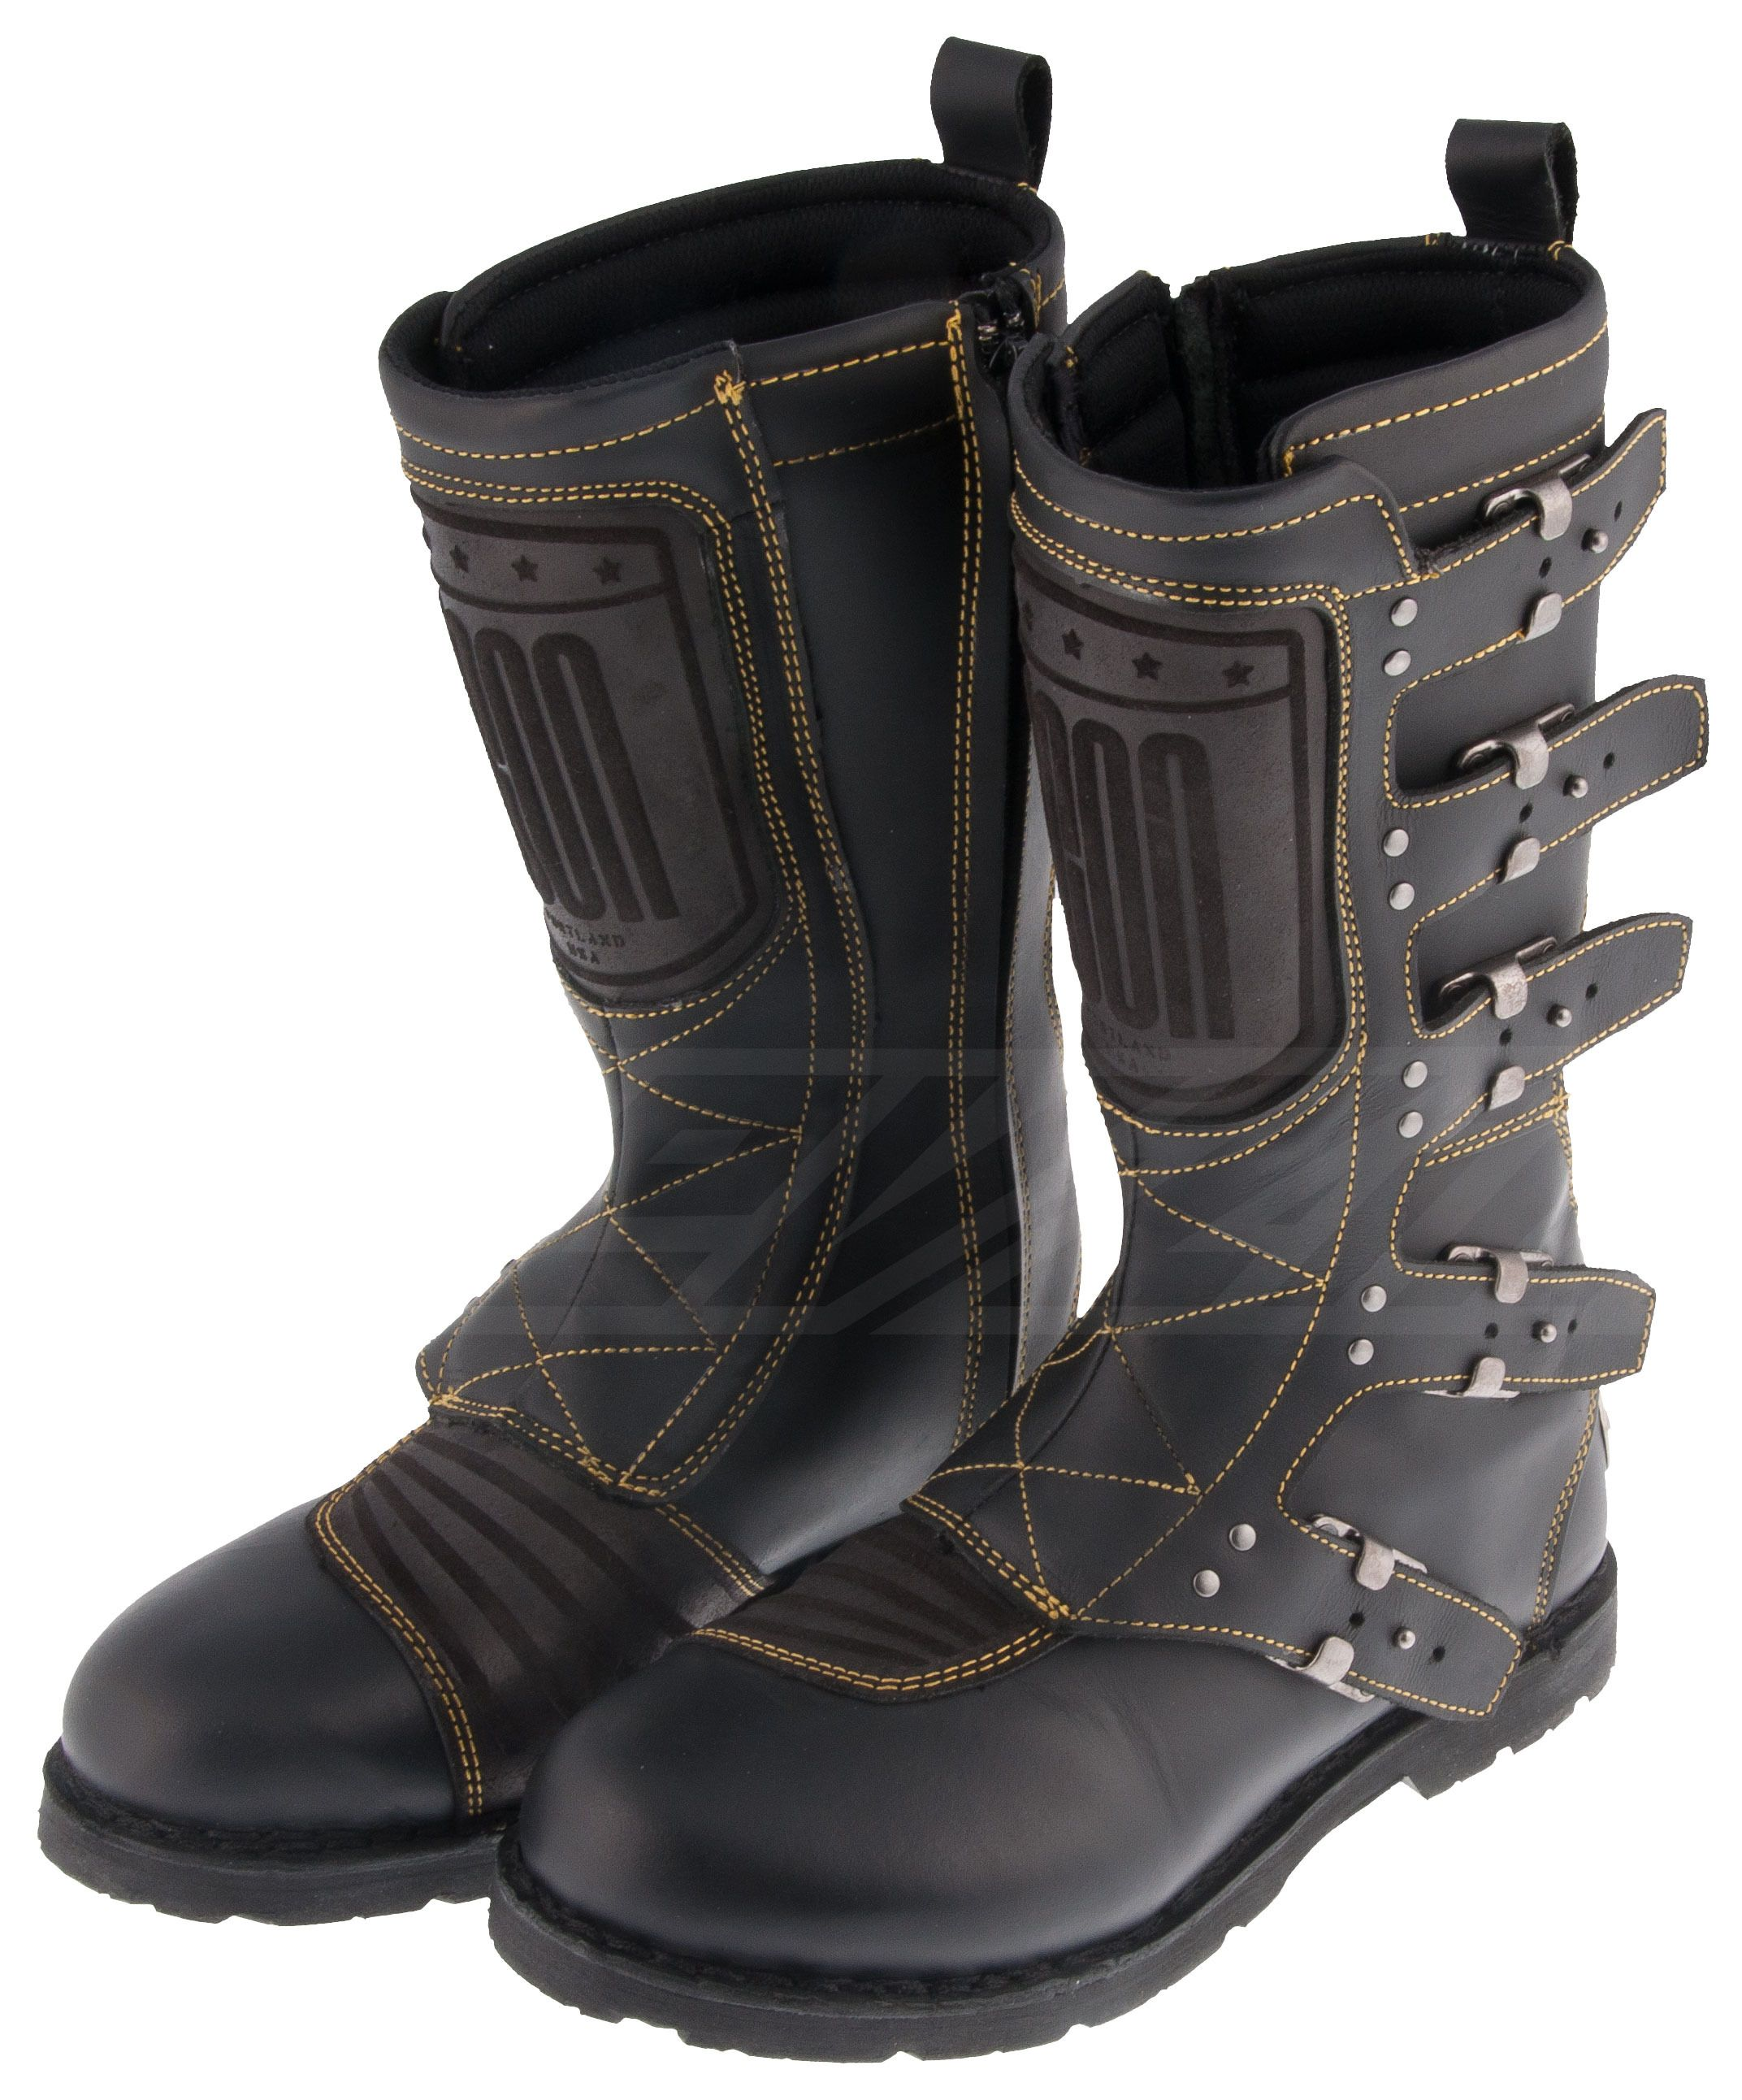 Womens riding boots with jeans